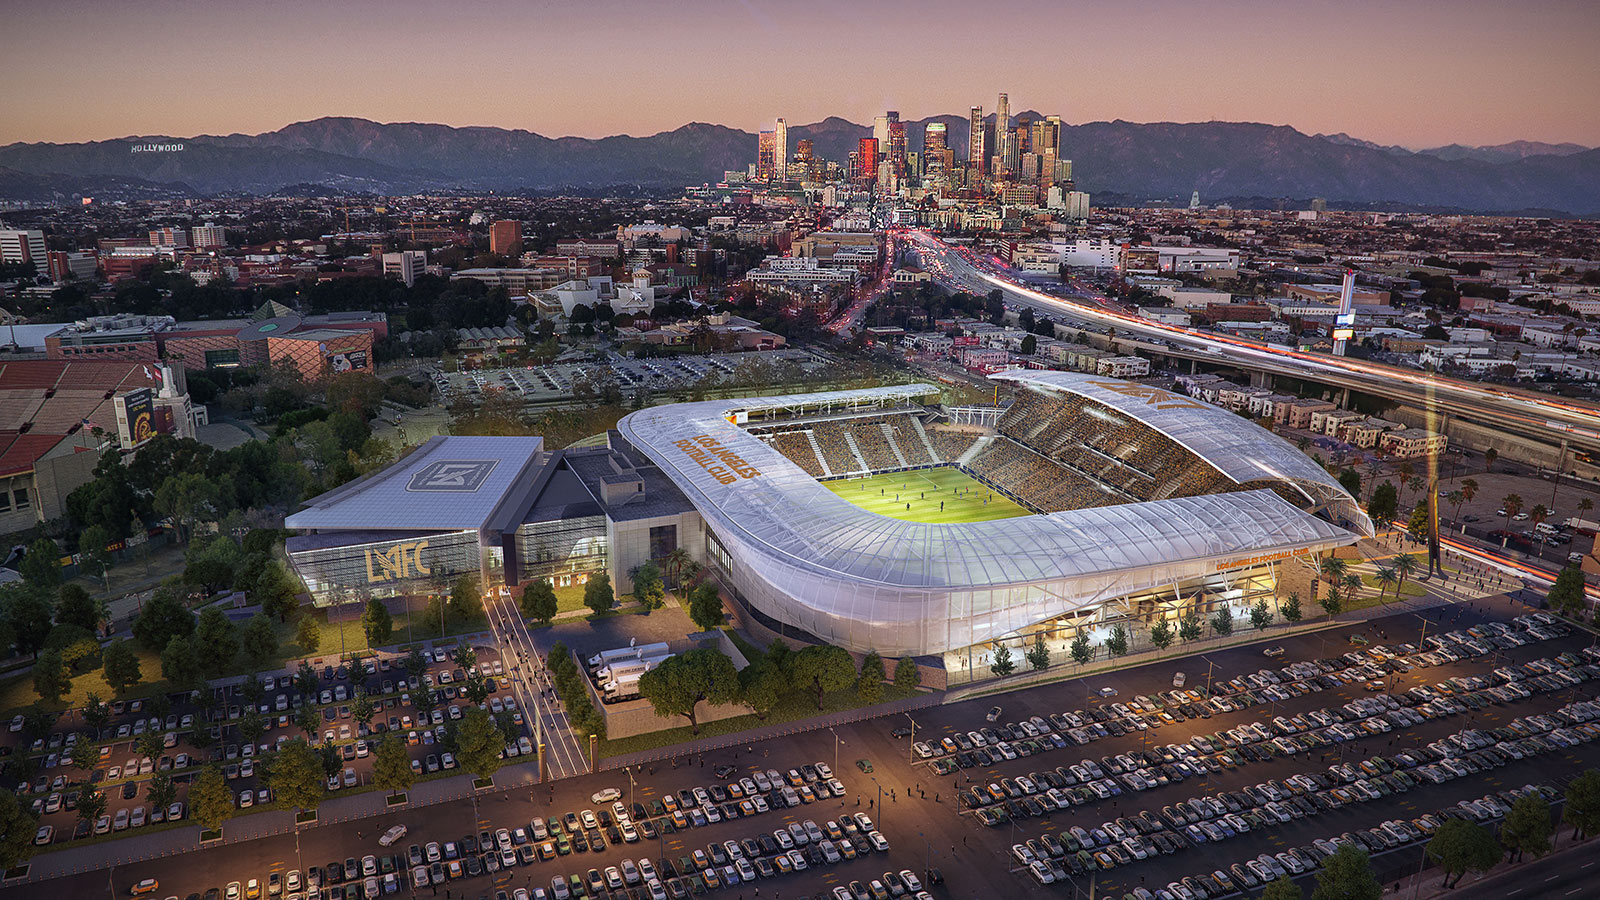 Lafc Stadium Granted Final Approval To Build From La City